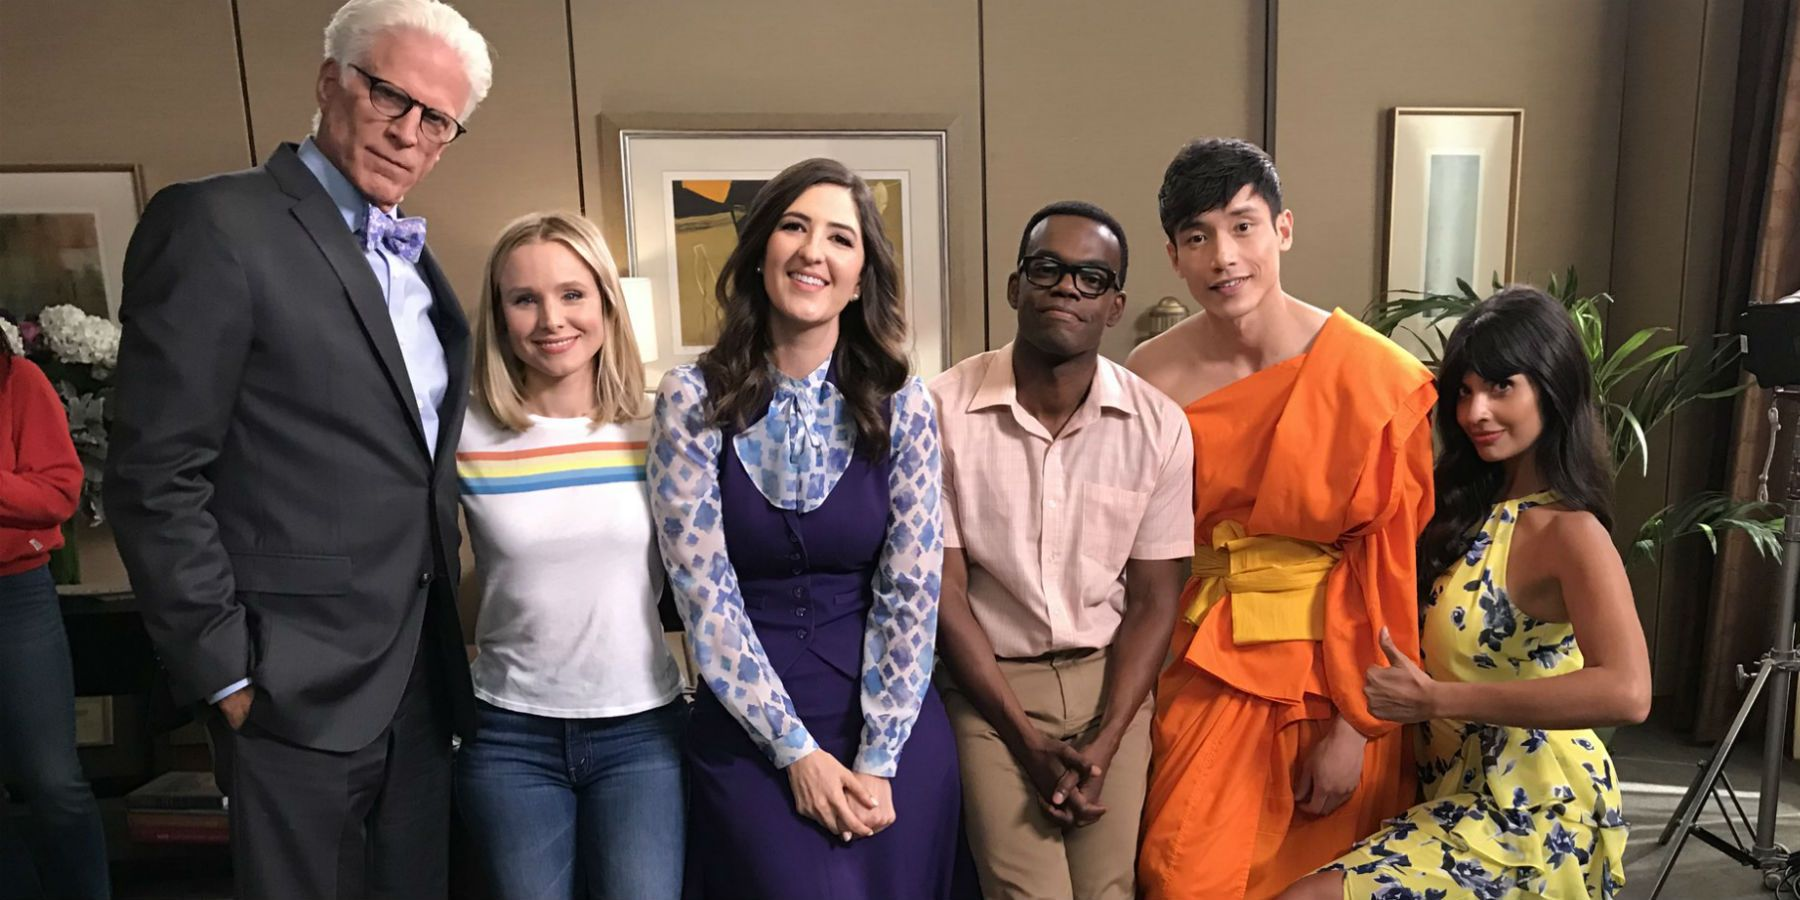 The Good Place: 10 Things We Need To See In Season 4 ...